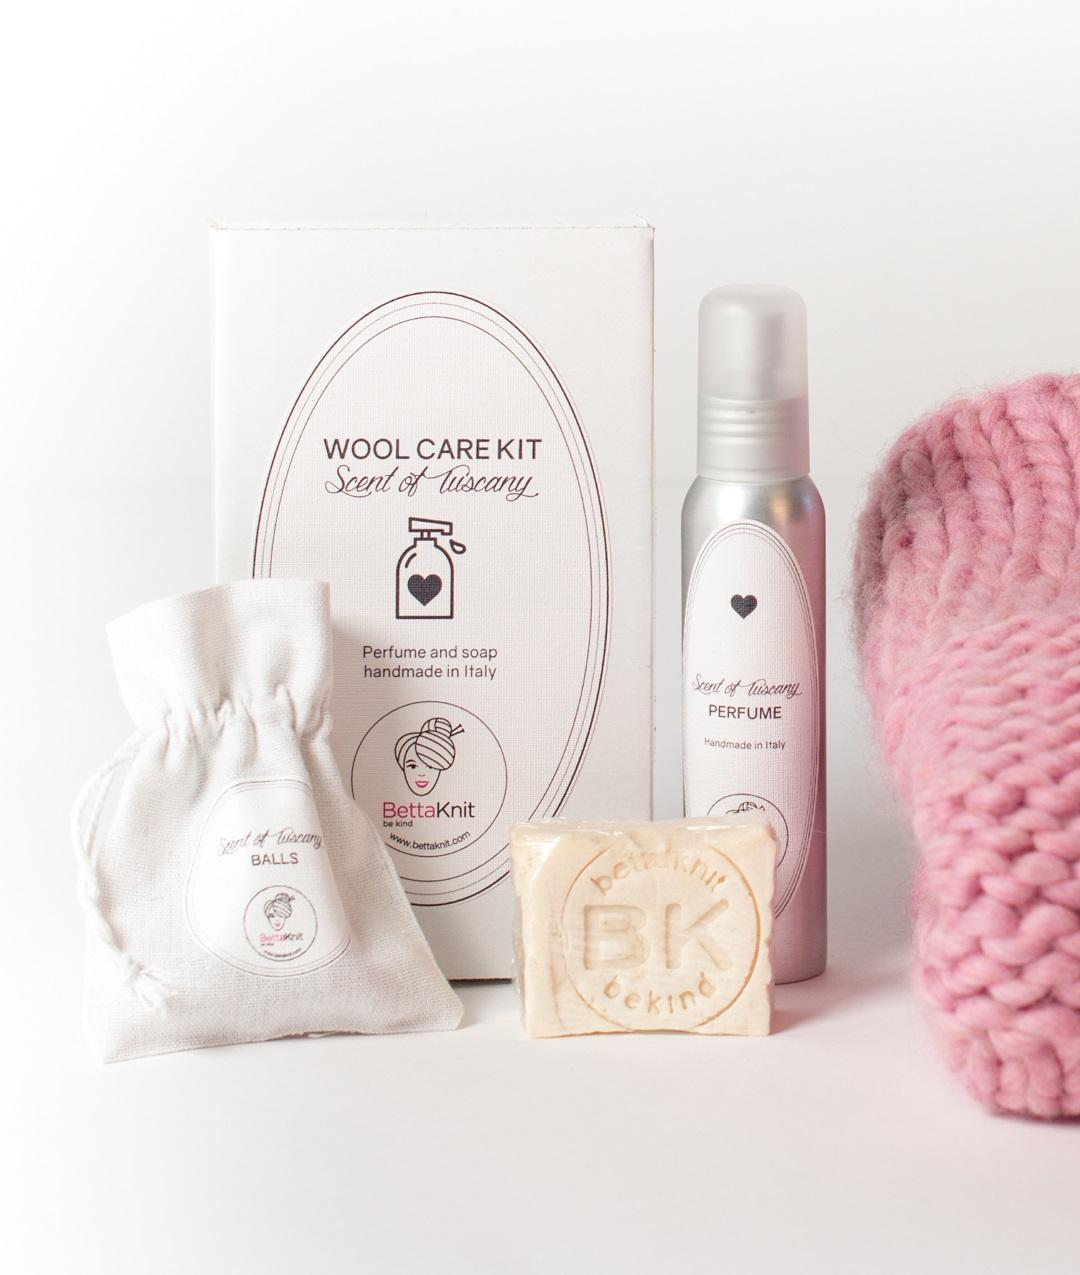 Kit Lavaggio lana  - Novità - Wool Care Kit - Scent of Tuscany - 1